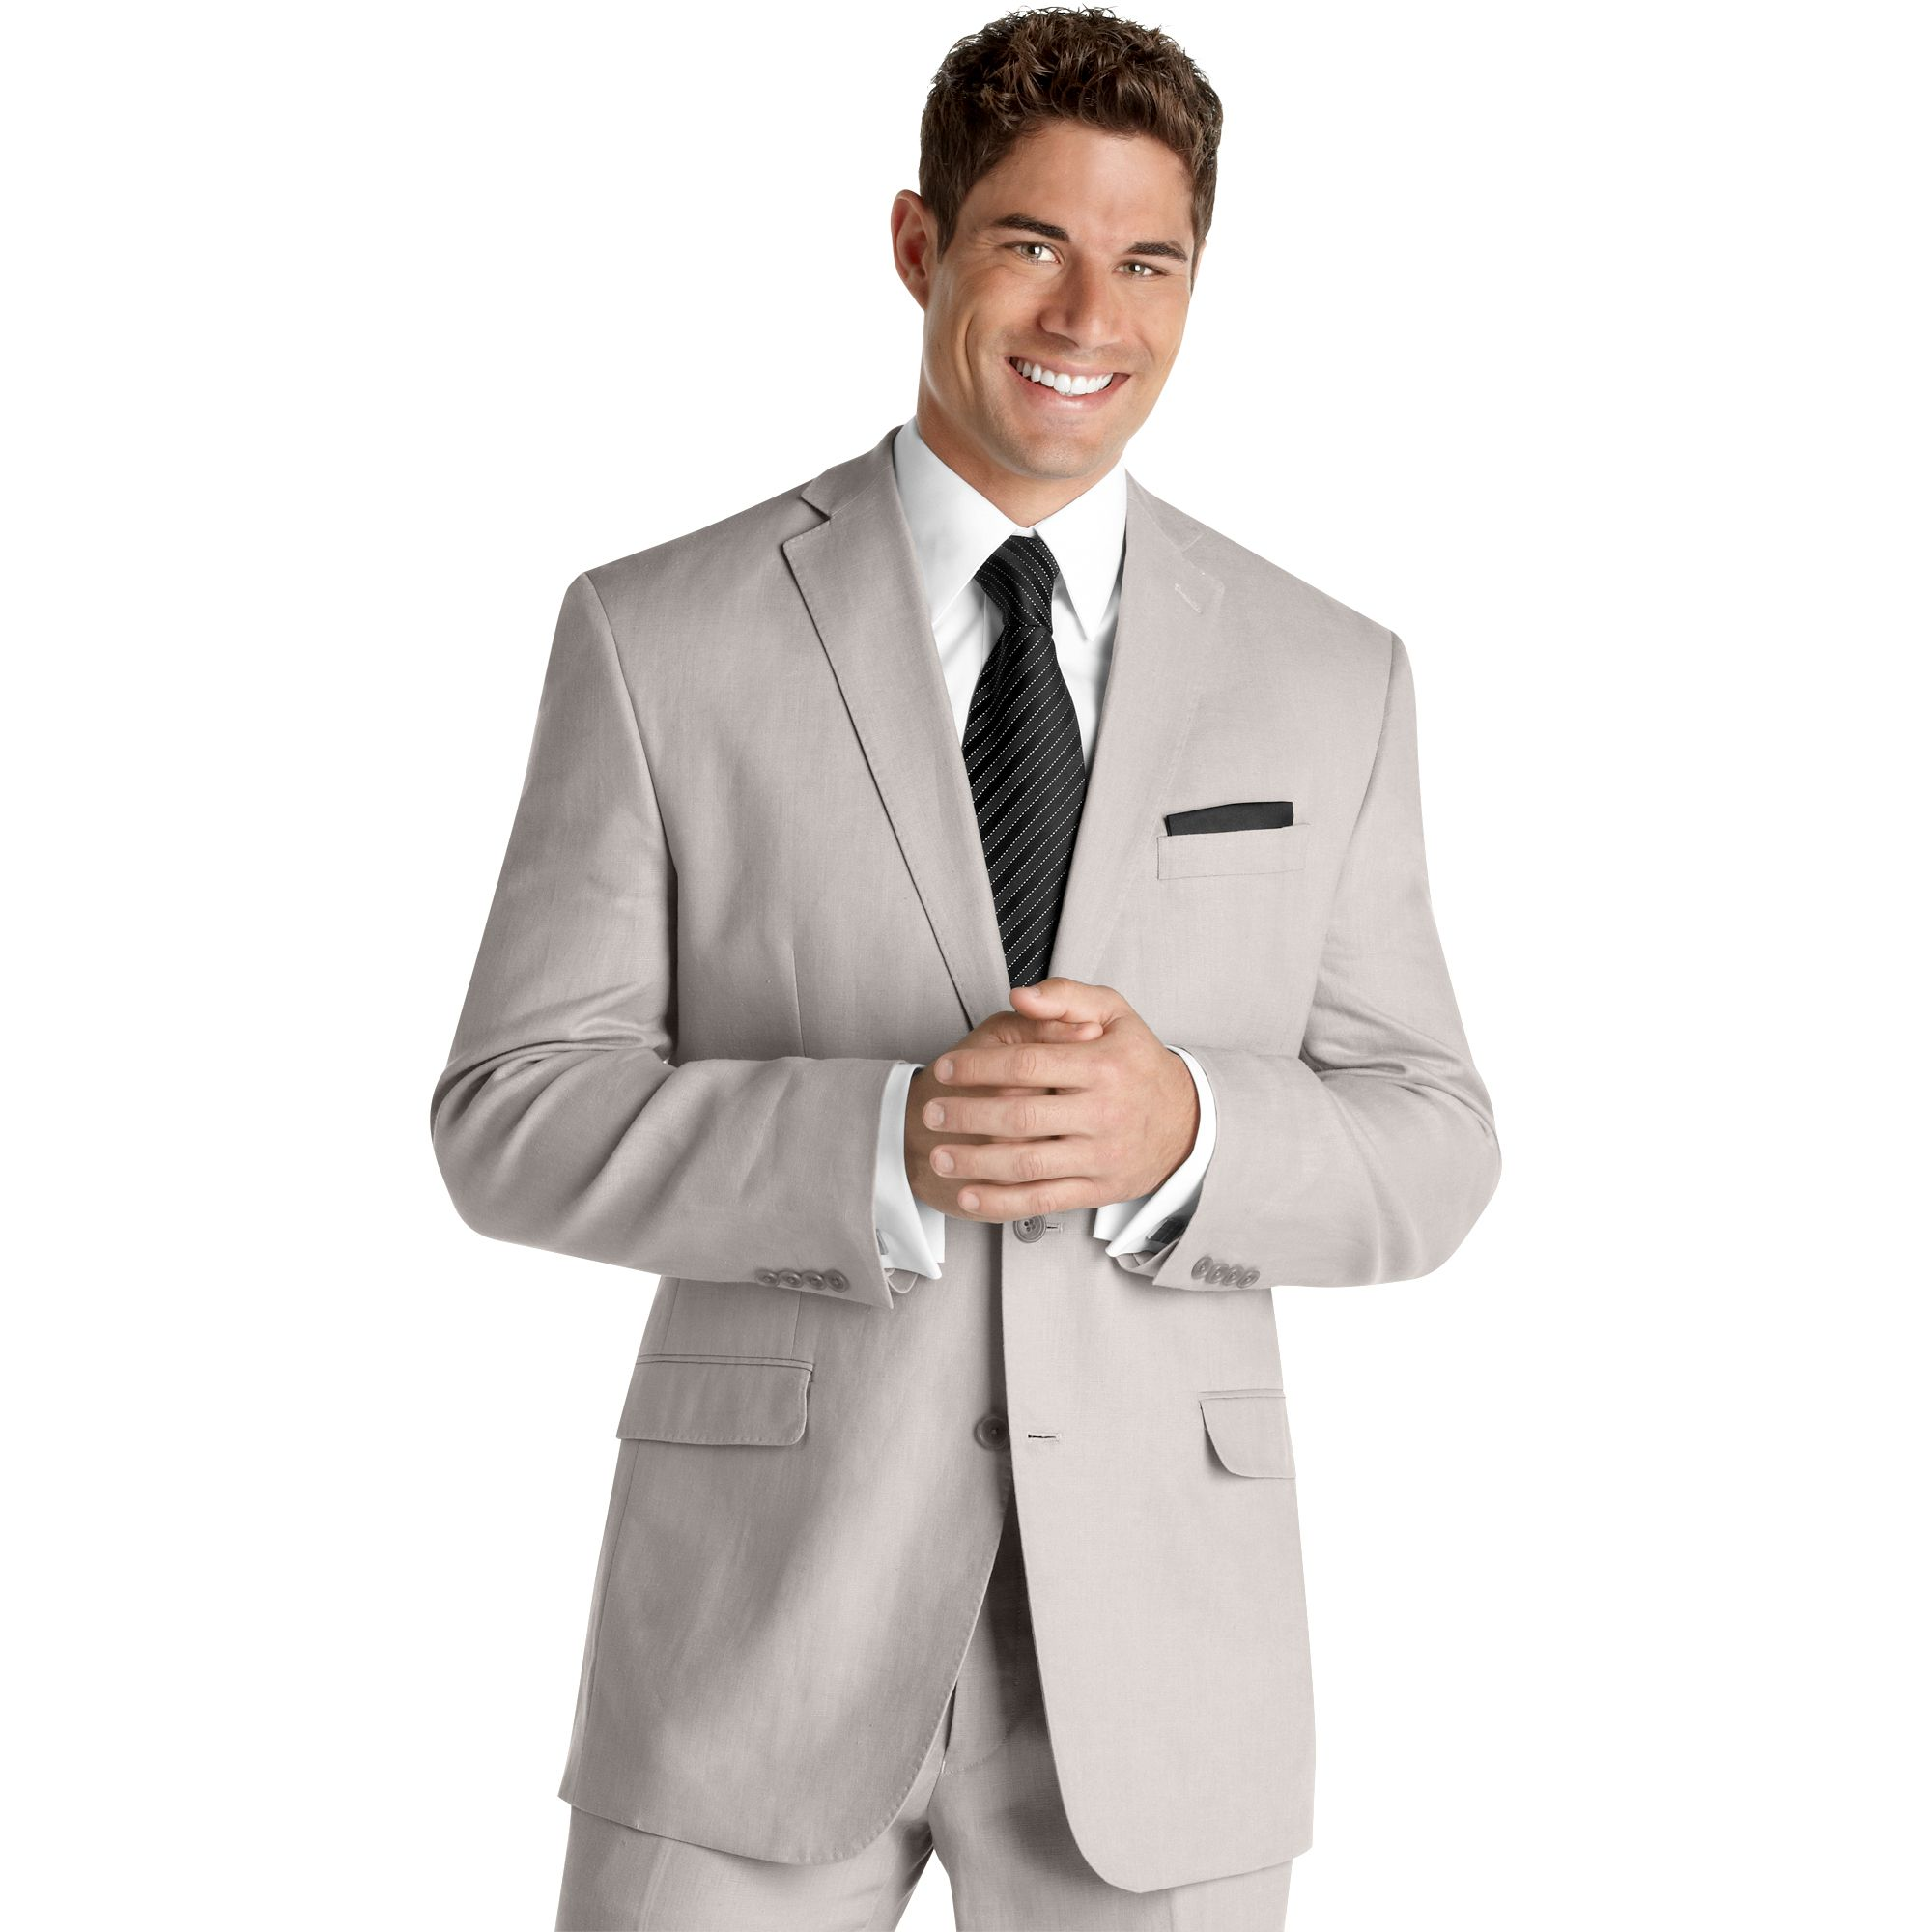 darkrey silver chennai suit party spring styles suits summer guest modern striking my pictures wedding tip derry leeds light excellent dress grey awesome for of charcoal in gray design